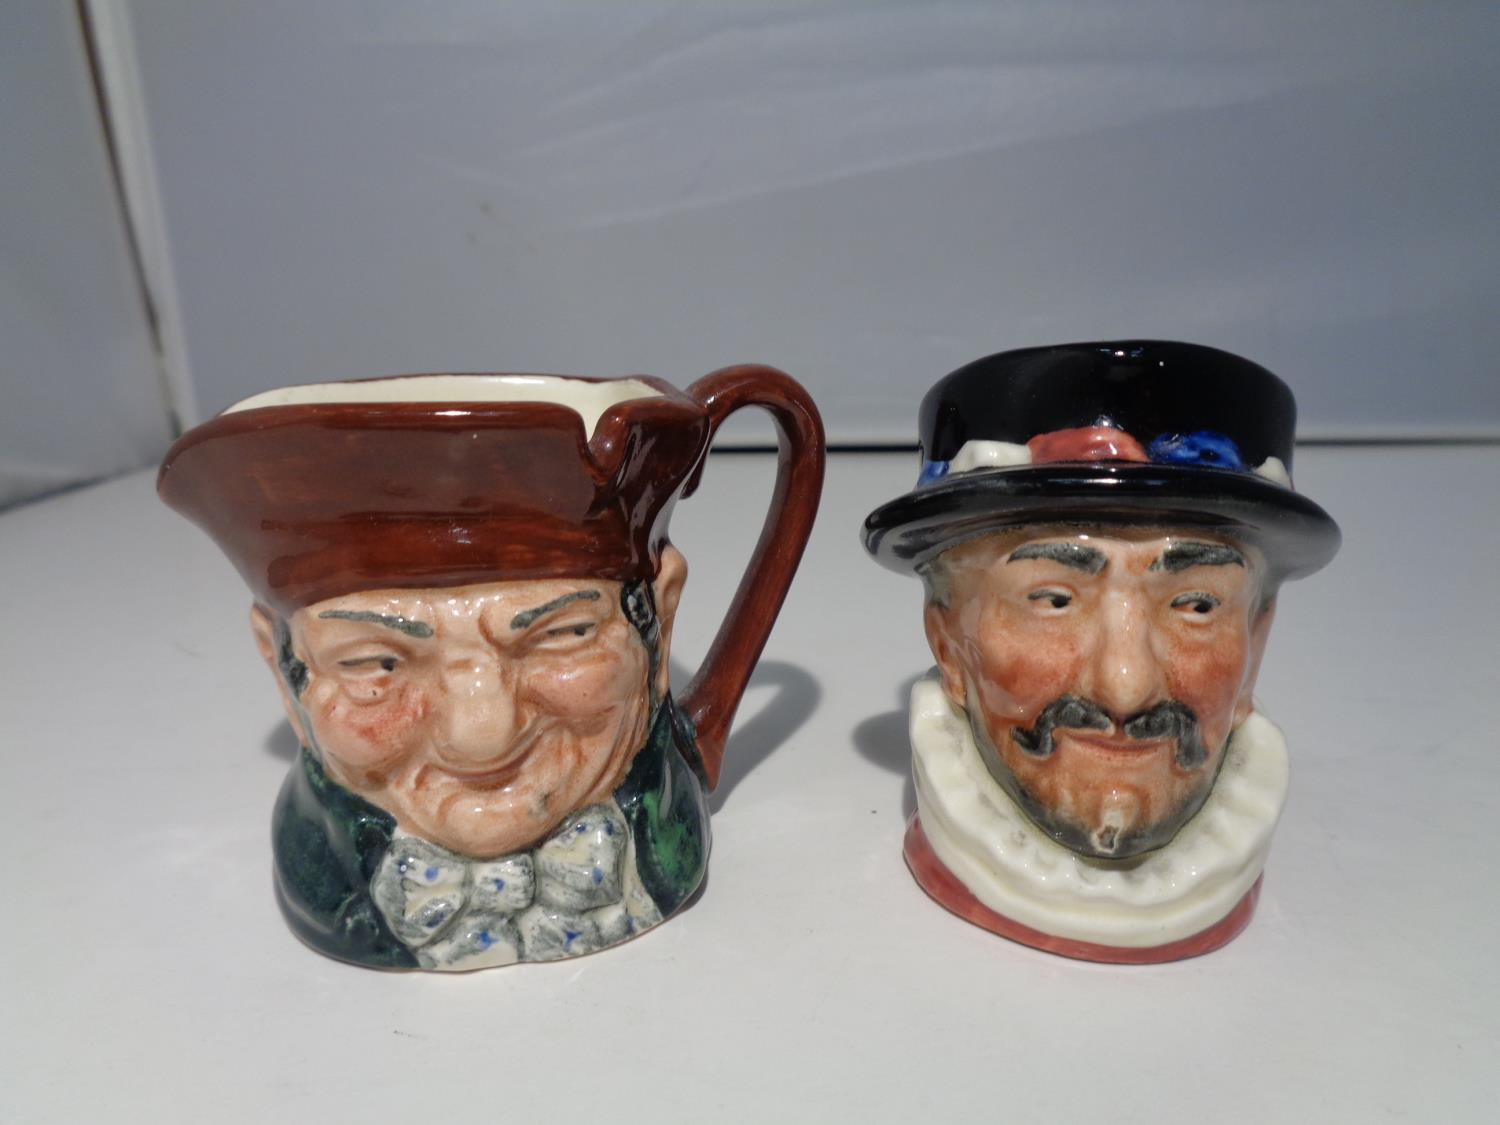 TWO MINIATURE ROYAL DOULTON TOBY JUGS 'BEEFEATER' AND 'OLD CHARLEY' - Image 2 of 6